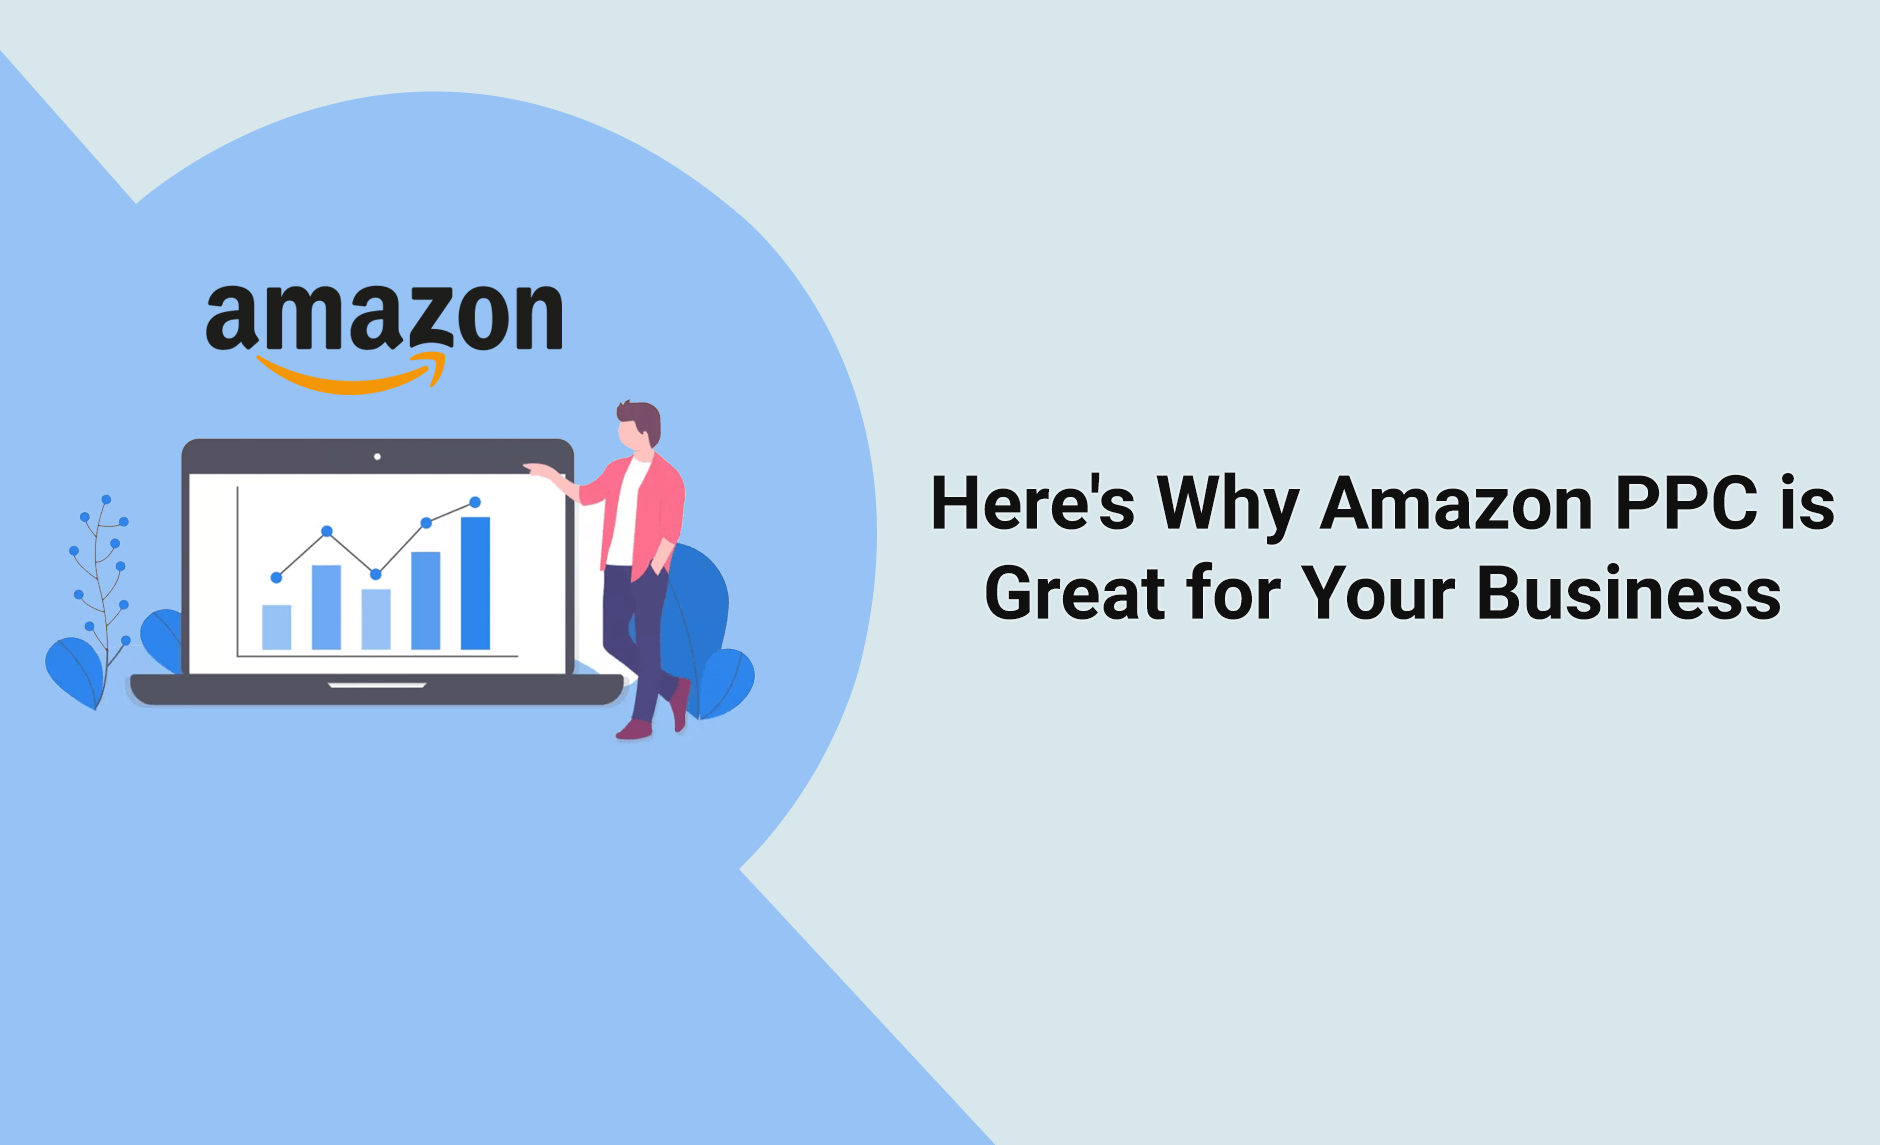 amazon ppc & why you need It for your business